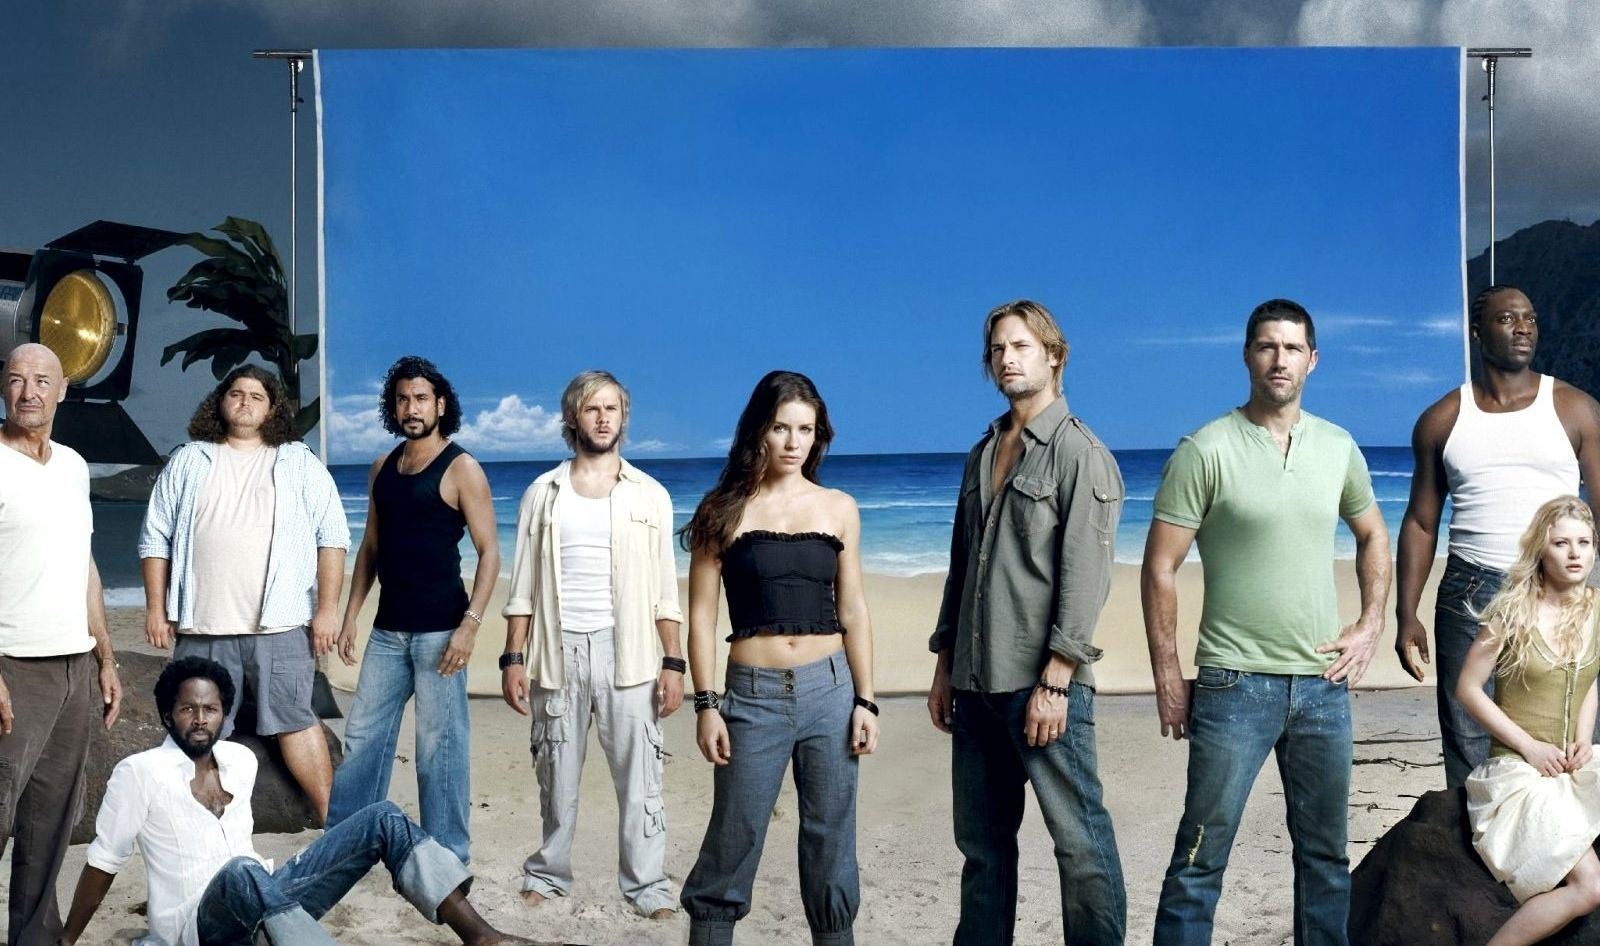 Lost producer expects TV show to return one day, it's 'inevitable'